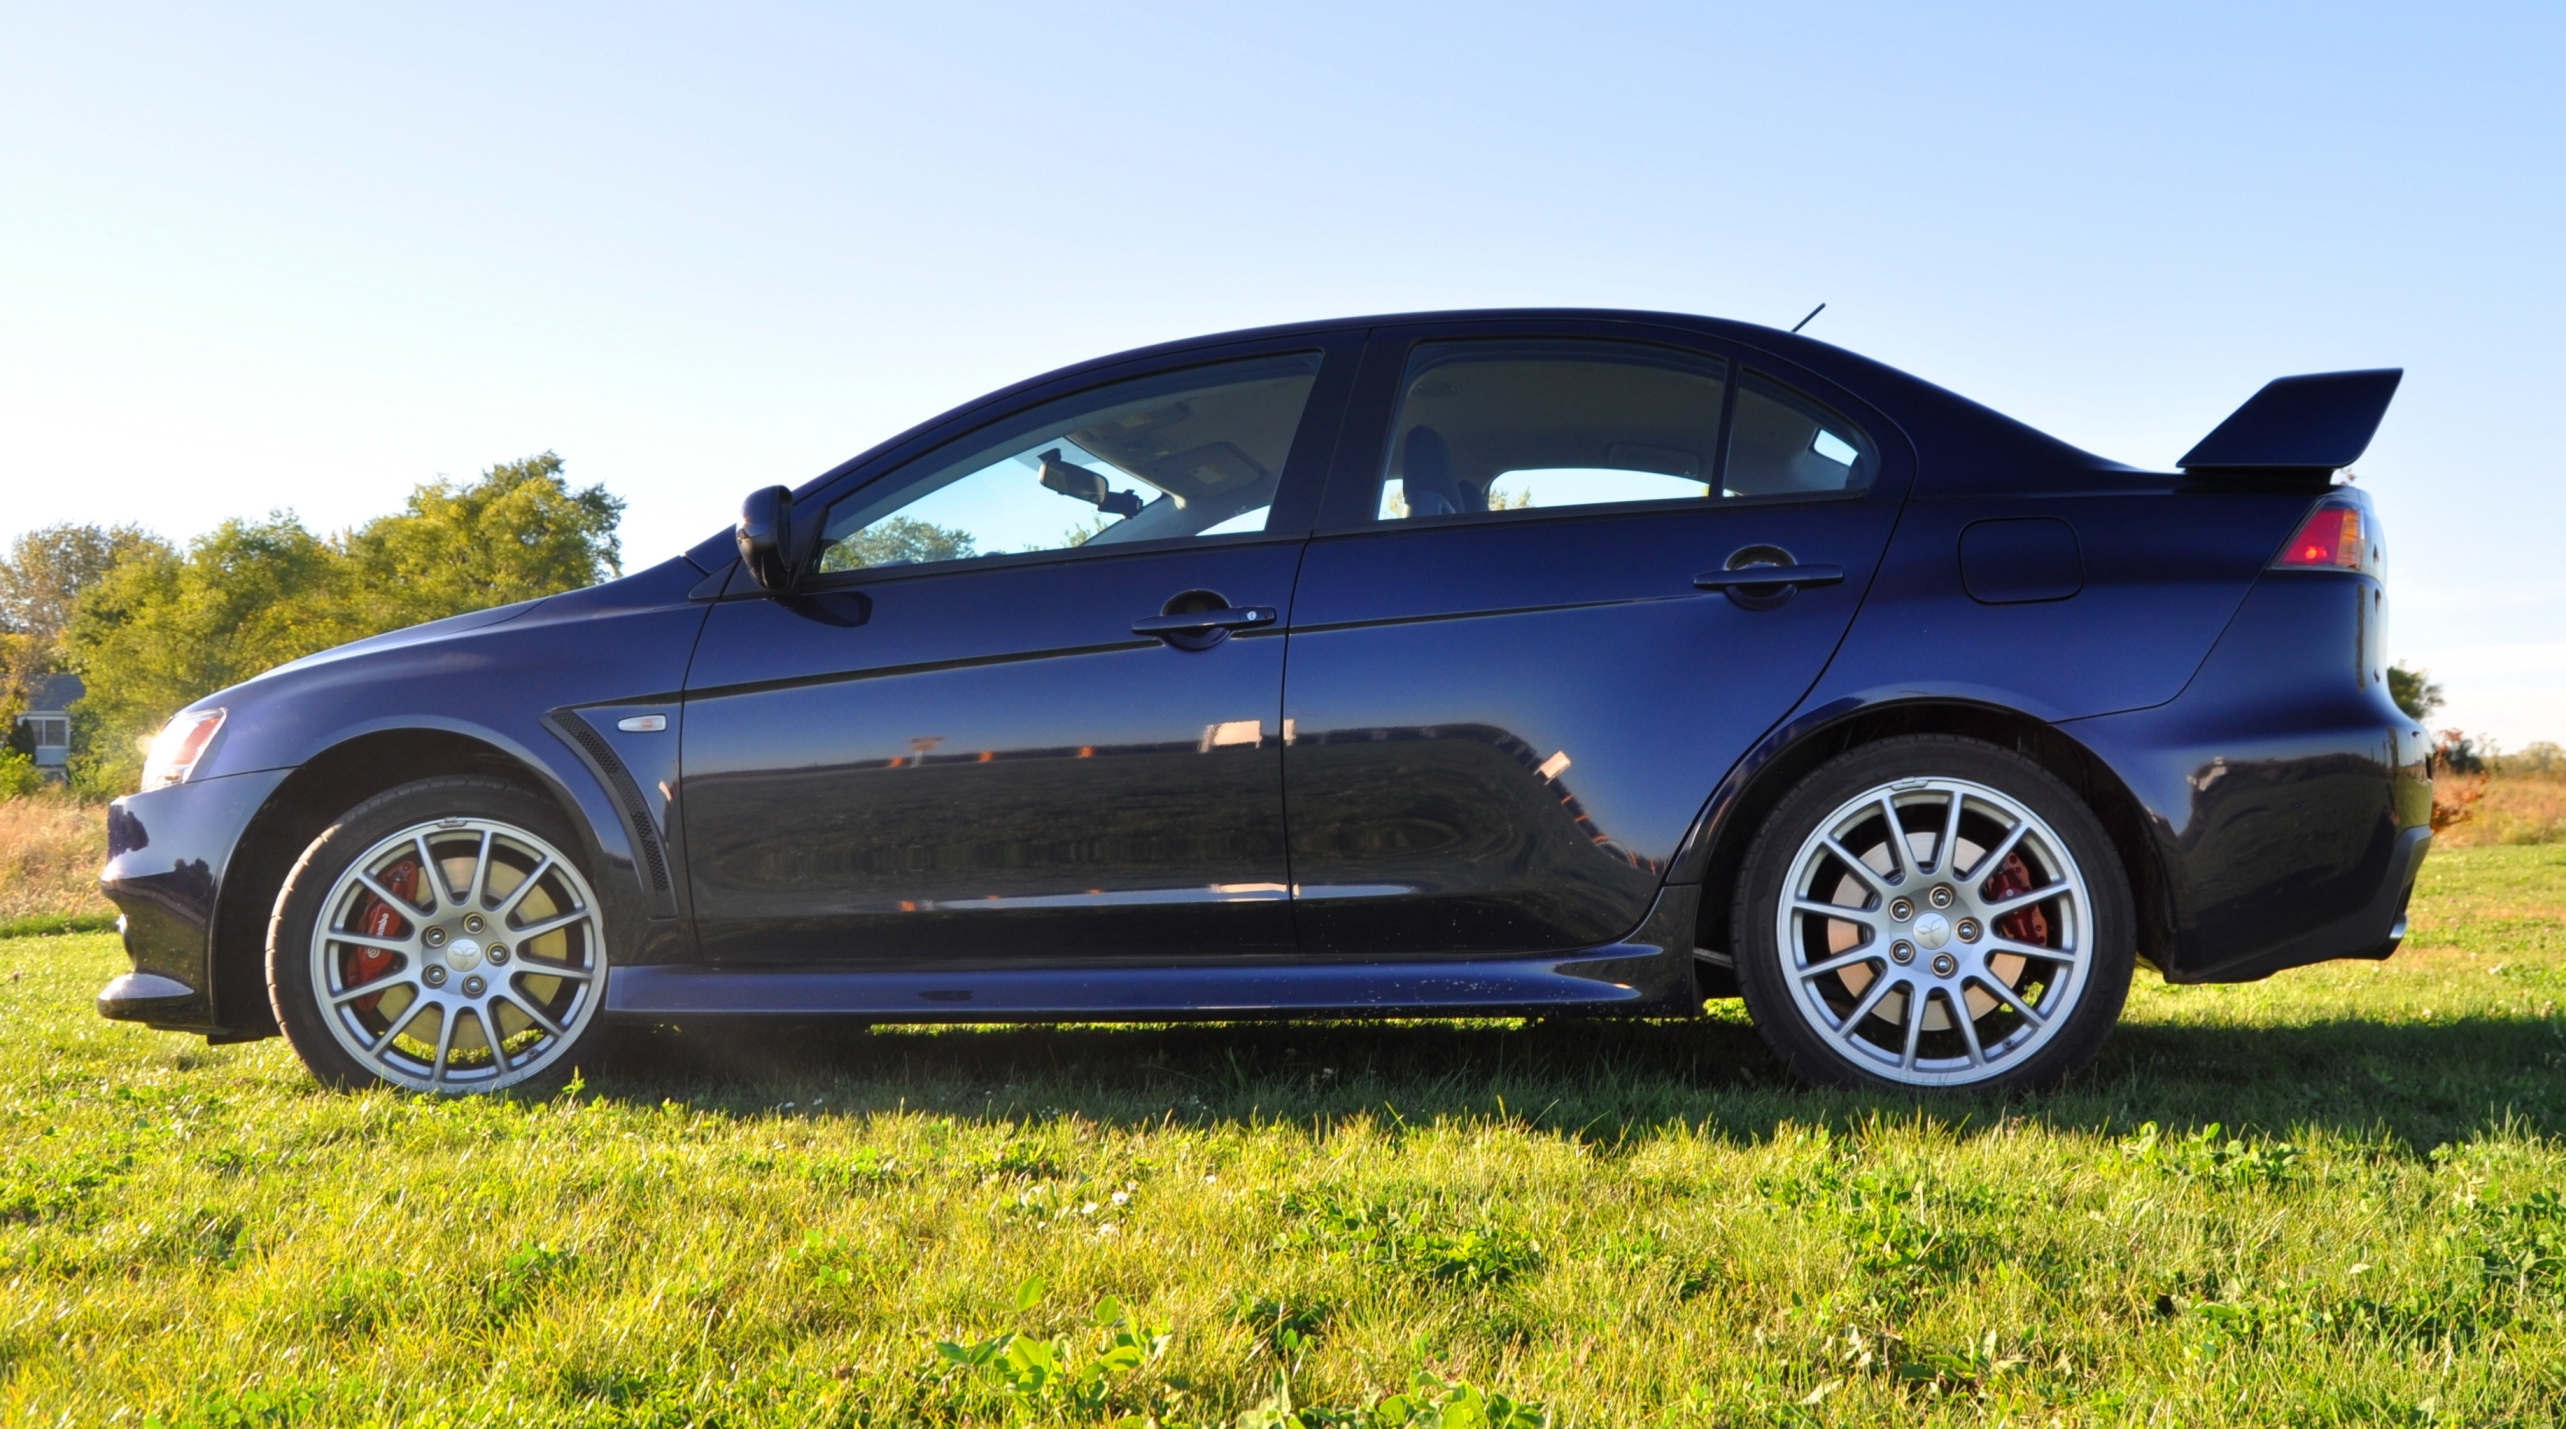 2014 Mitsubishi Lancer Evolution - Driven | Top Speed